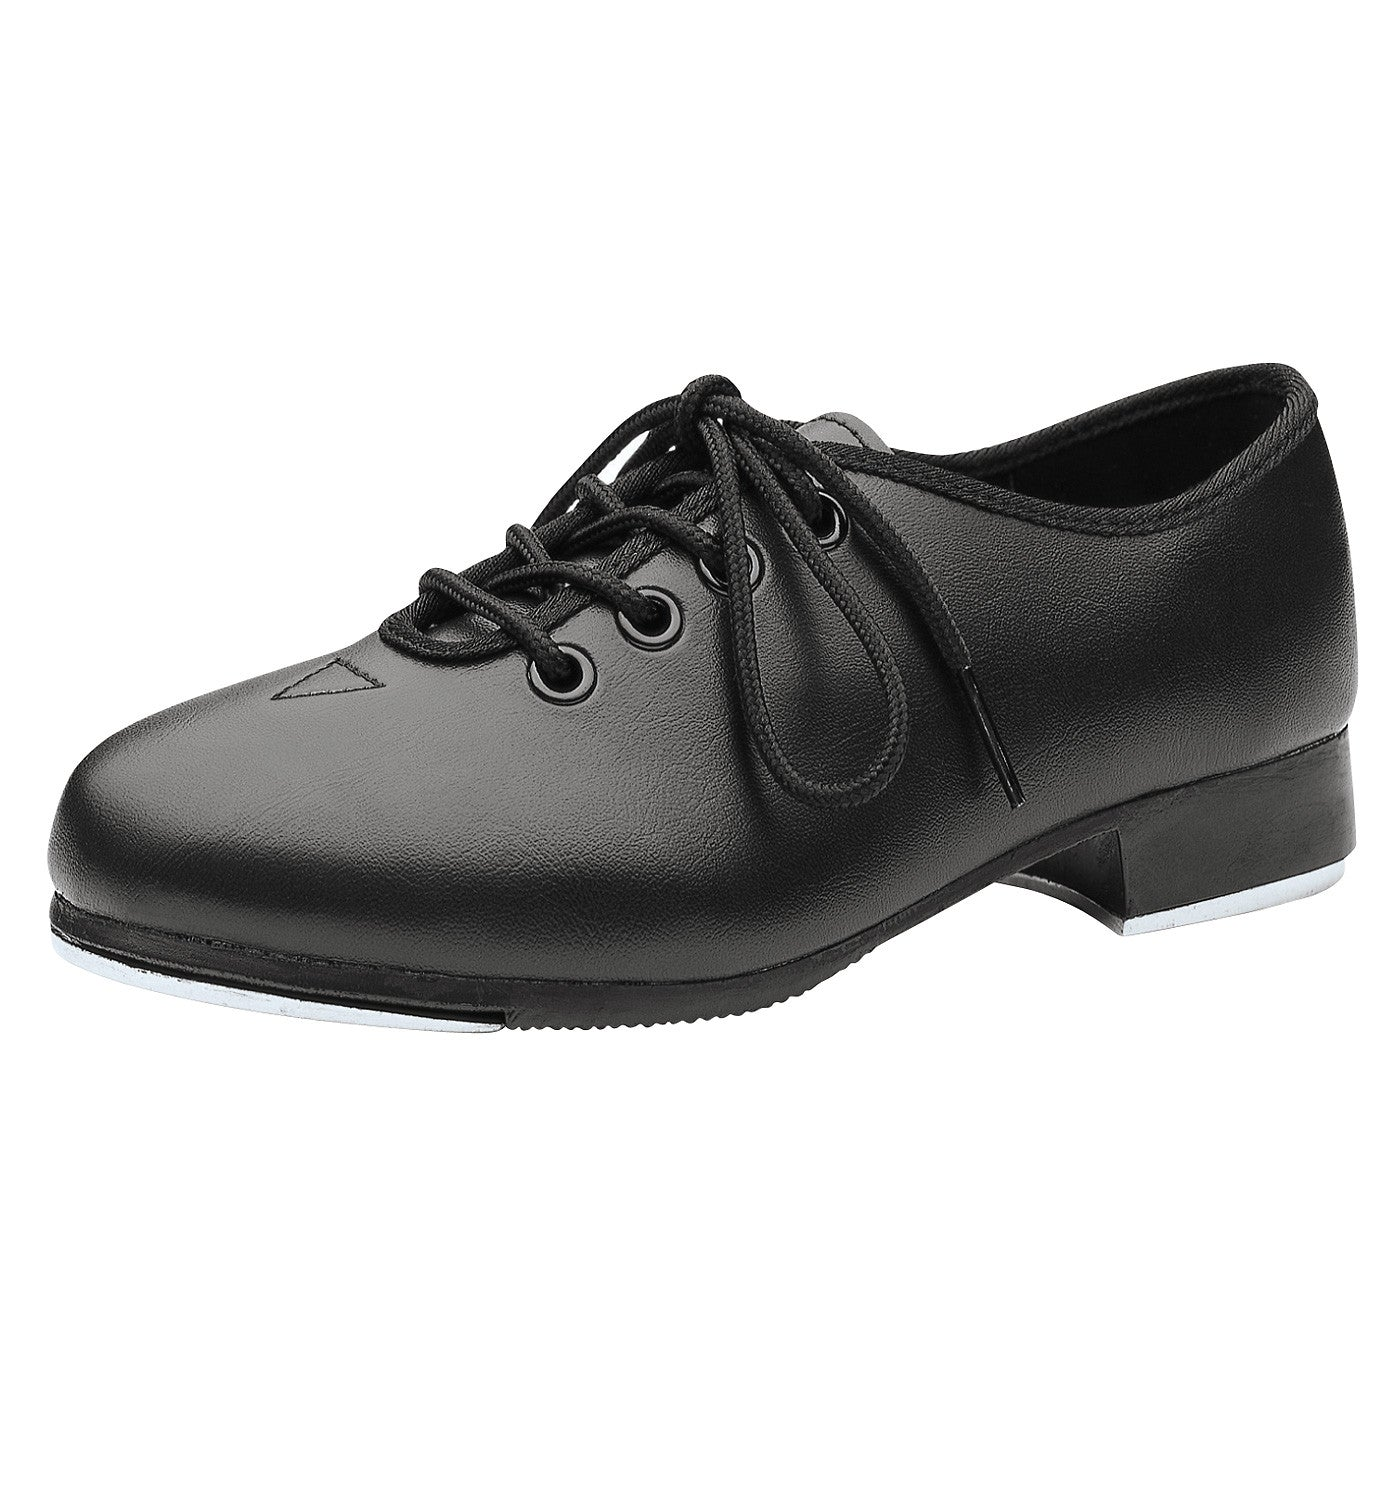 Bloch Dance Now Children's Black Student Jazz Tap Shoes